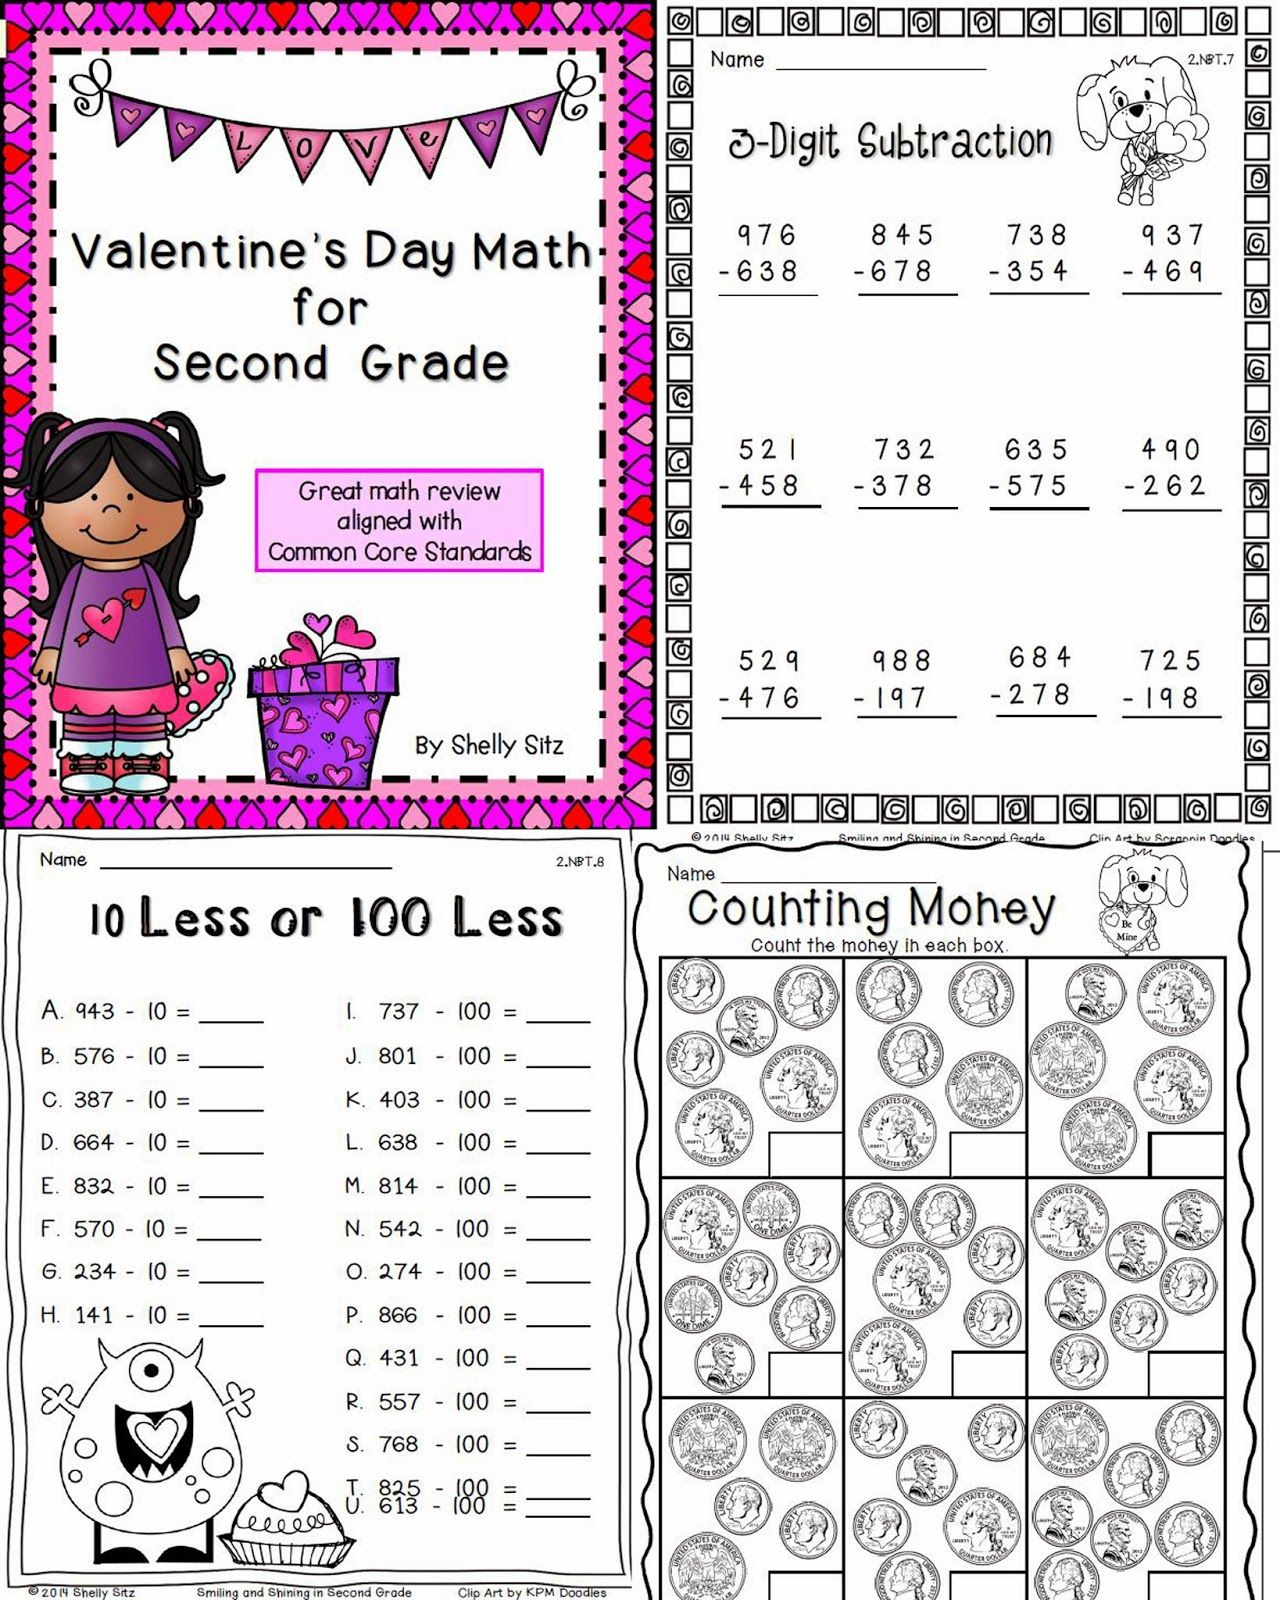 Smiling And Shining In Second Grade Valentine S Math For Second Grade